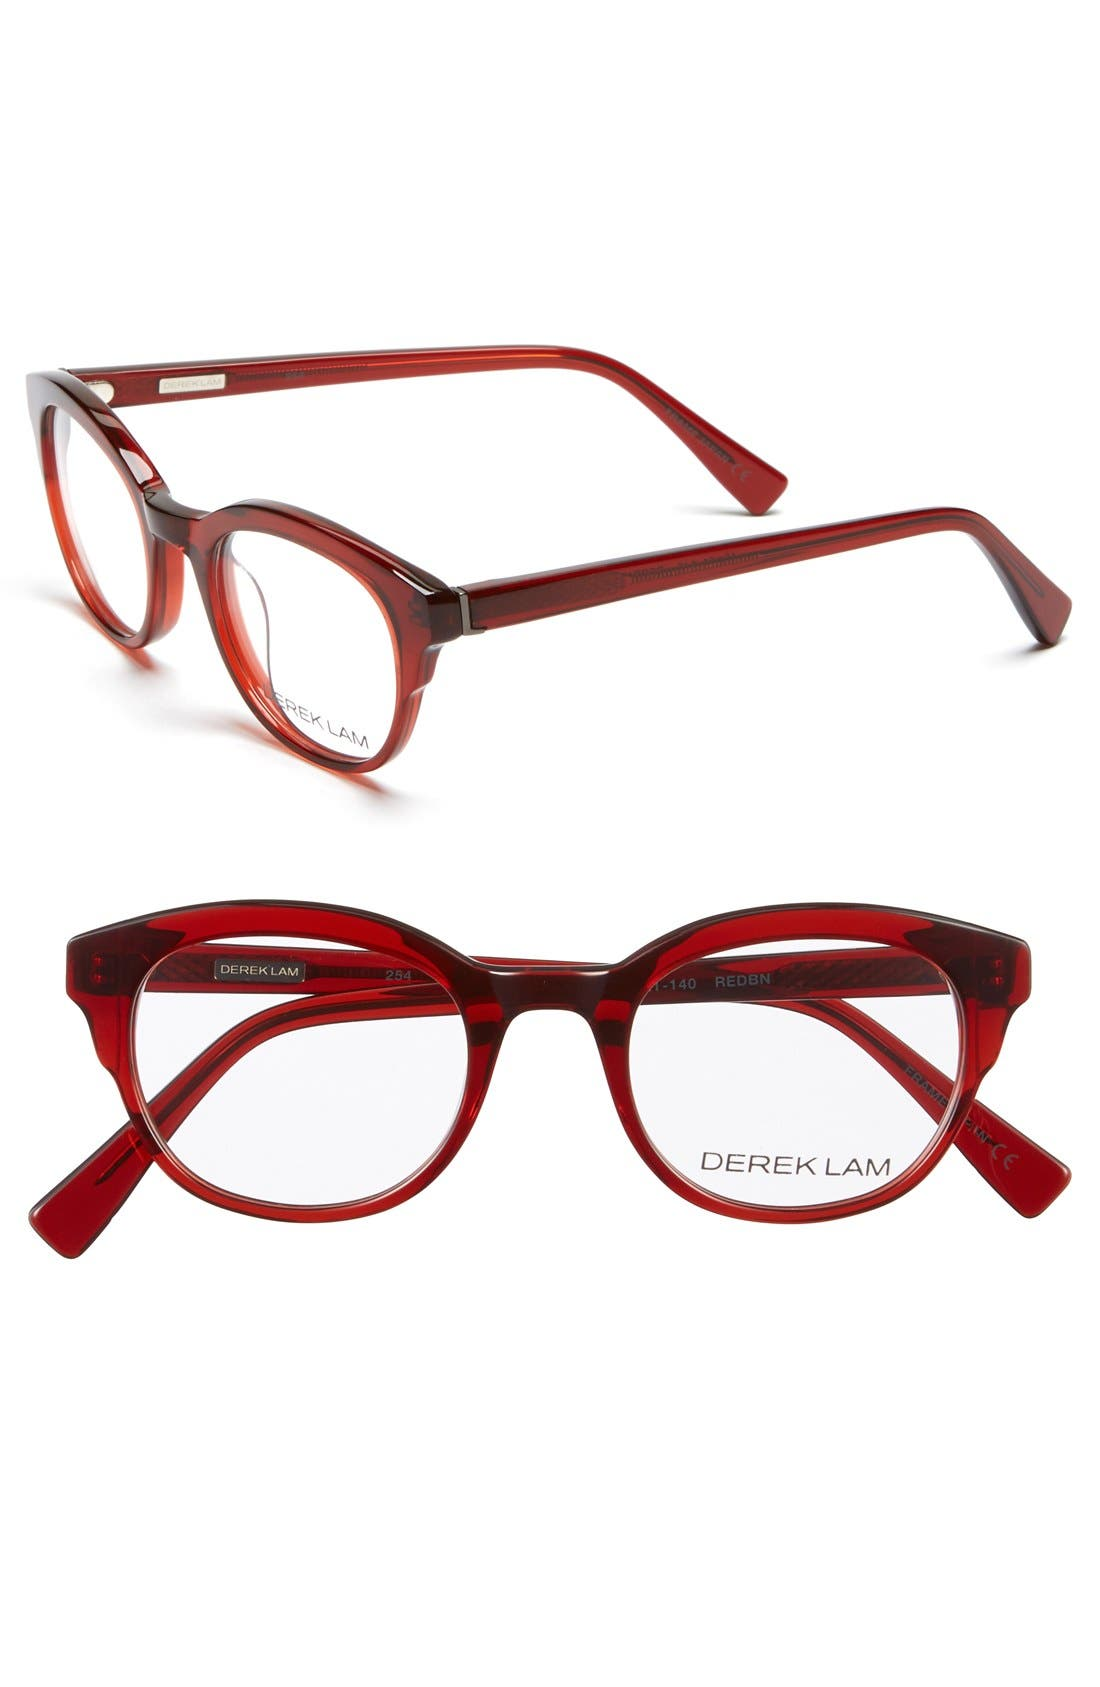 46mm Optical Glasses,                         Main,                         color, Red/ Brown